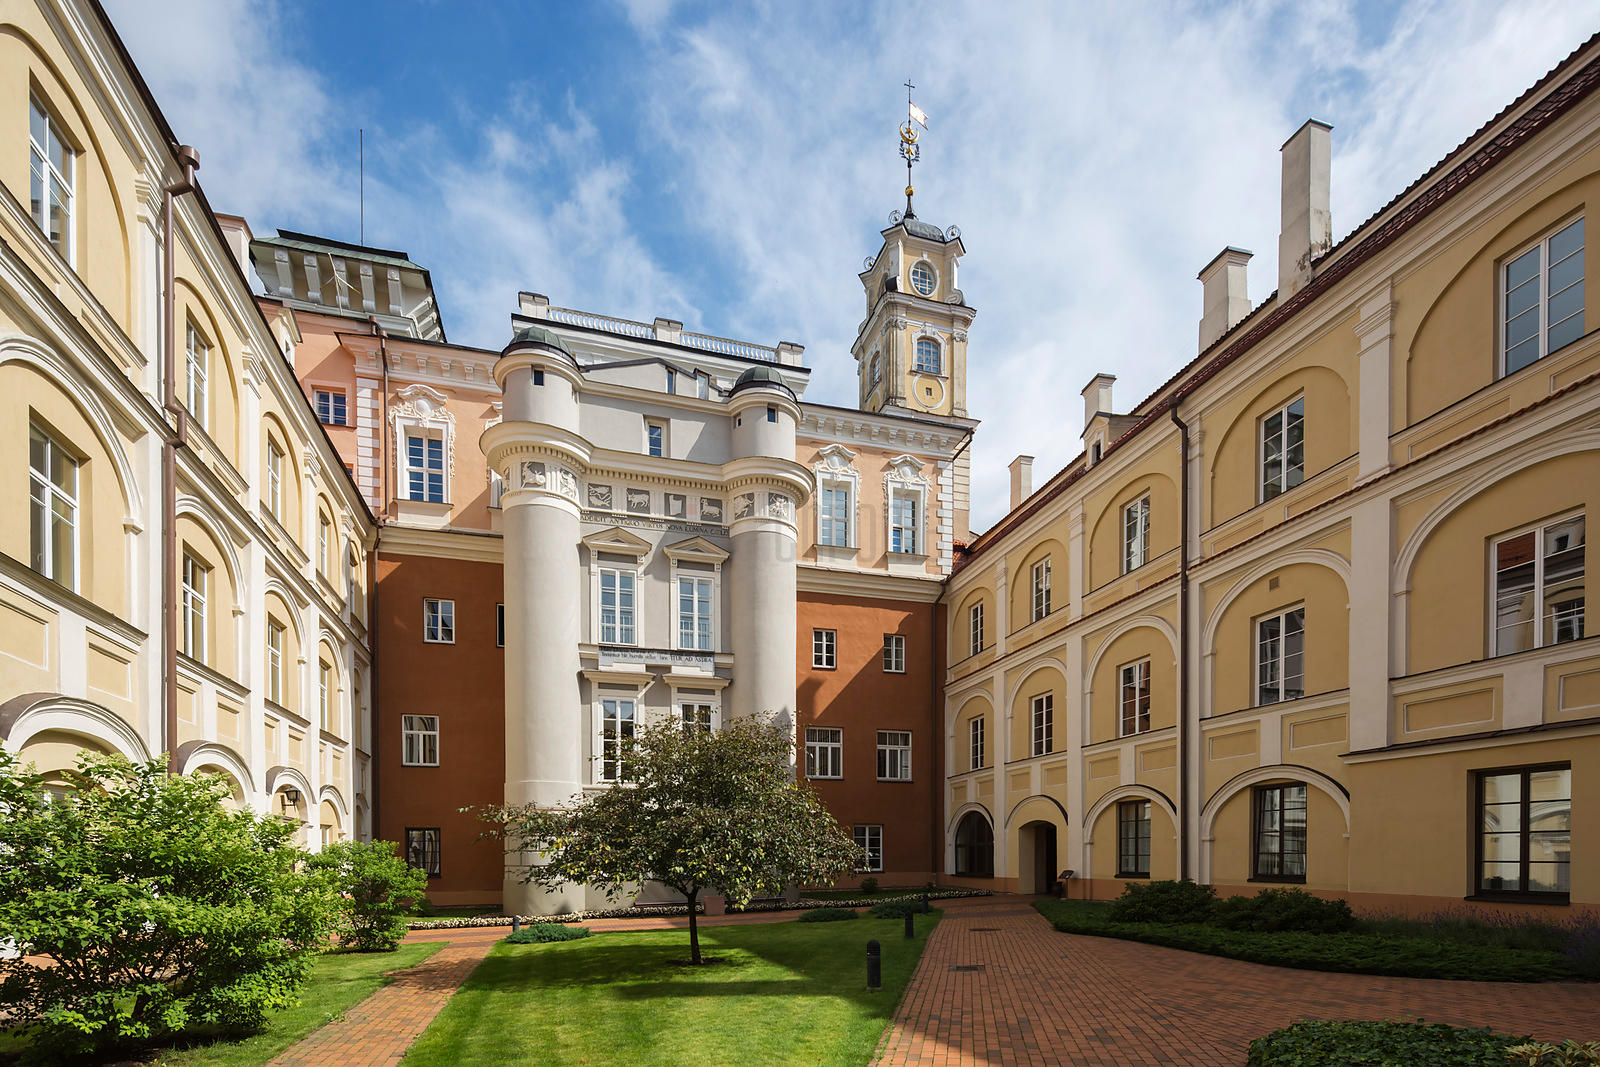 Courtyard of the Observatory at the University of Vilnius